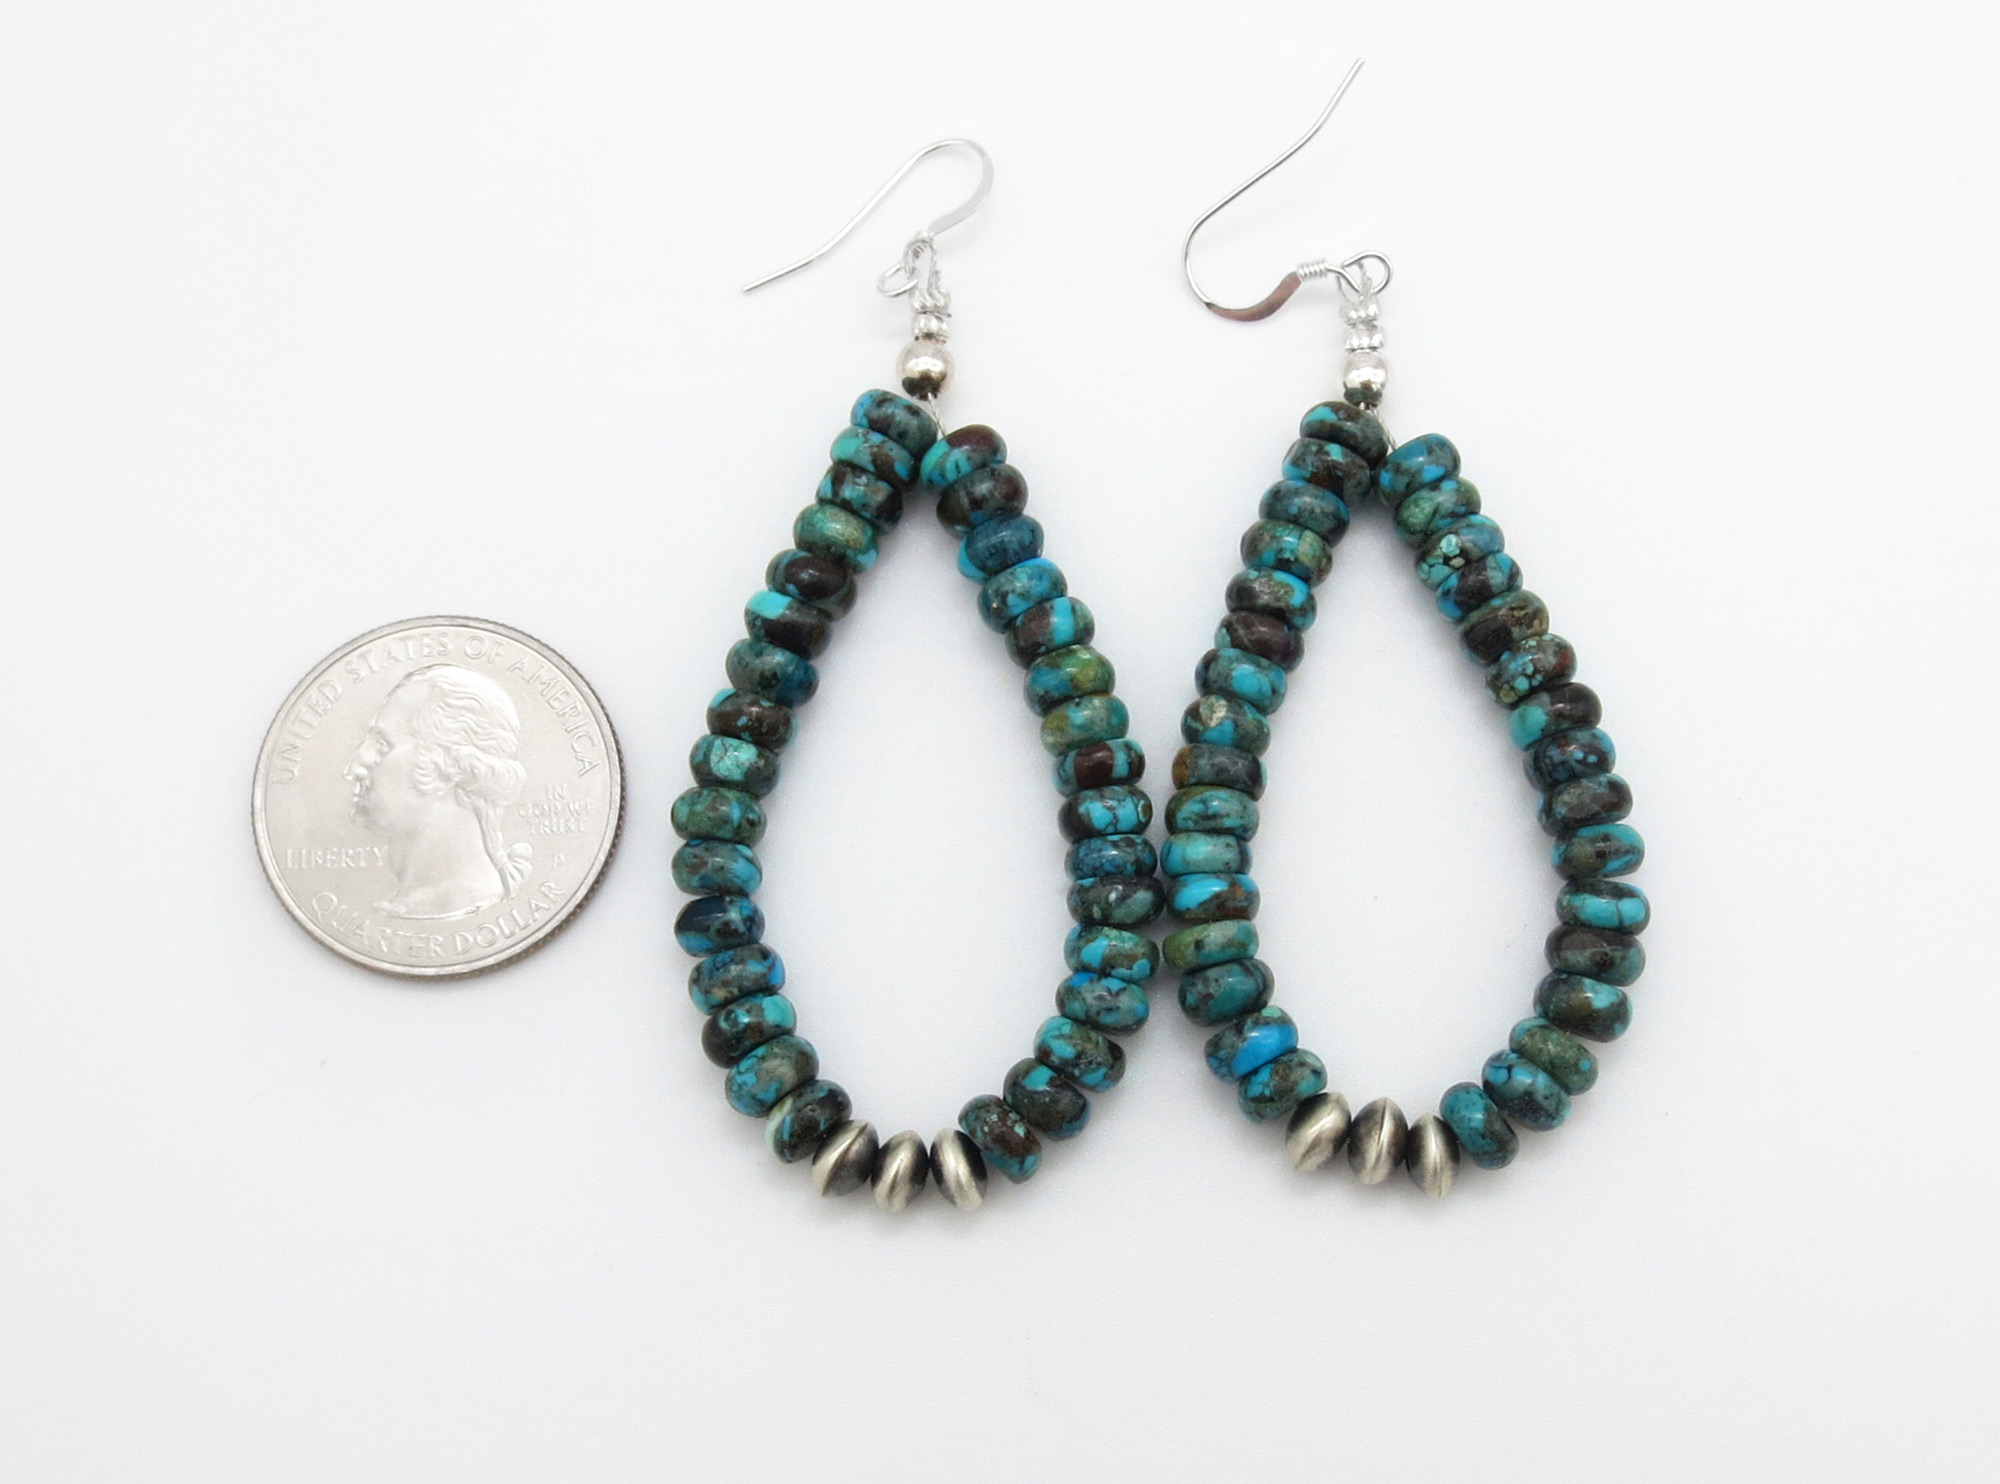 Image 1 of   Rondelle Turquoise Bead & Sterling Silver Earrings Navajo - 3768rio